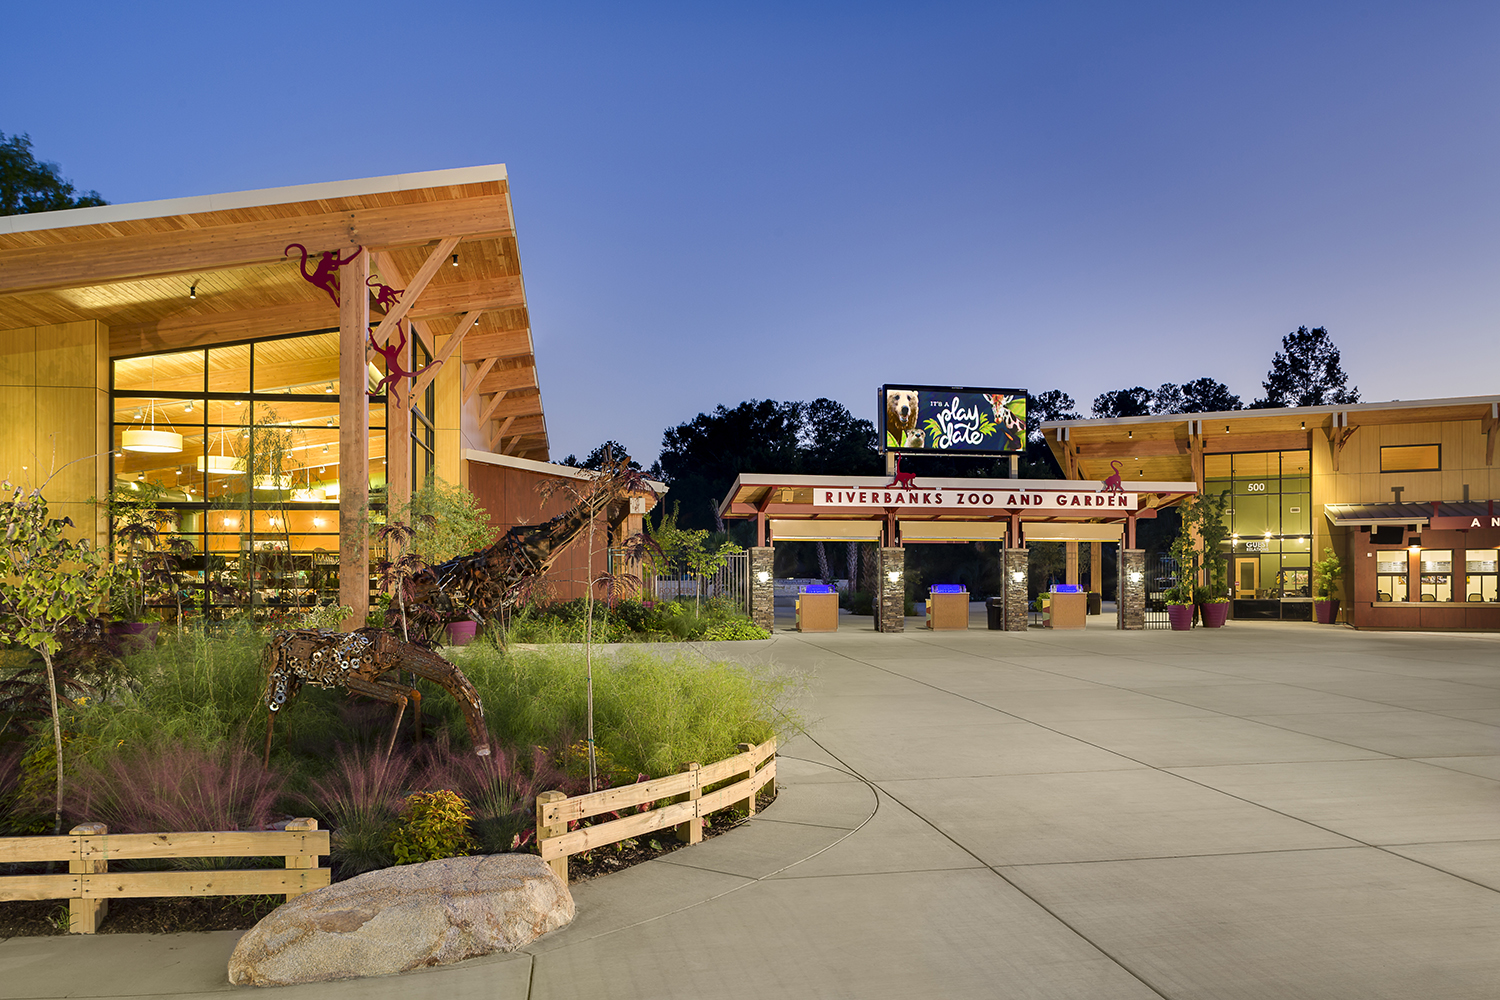 Riverbanks zoo and garden rodgers builders for Columbia at south river gardens